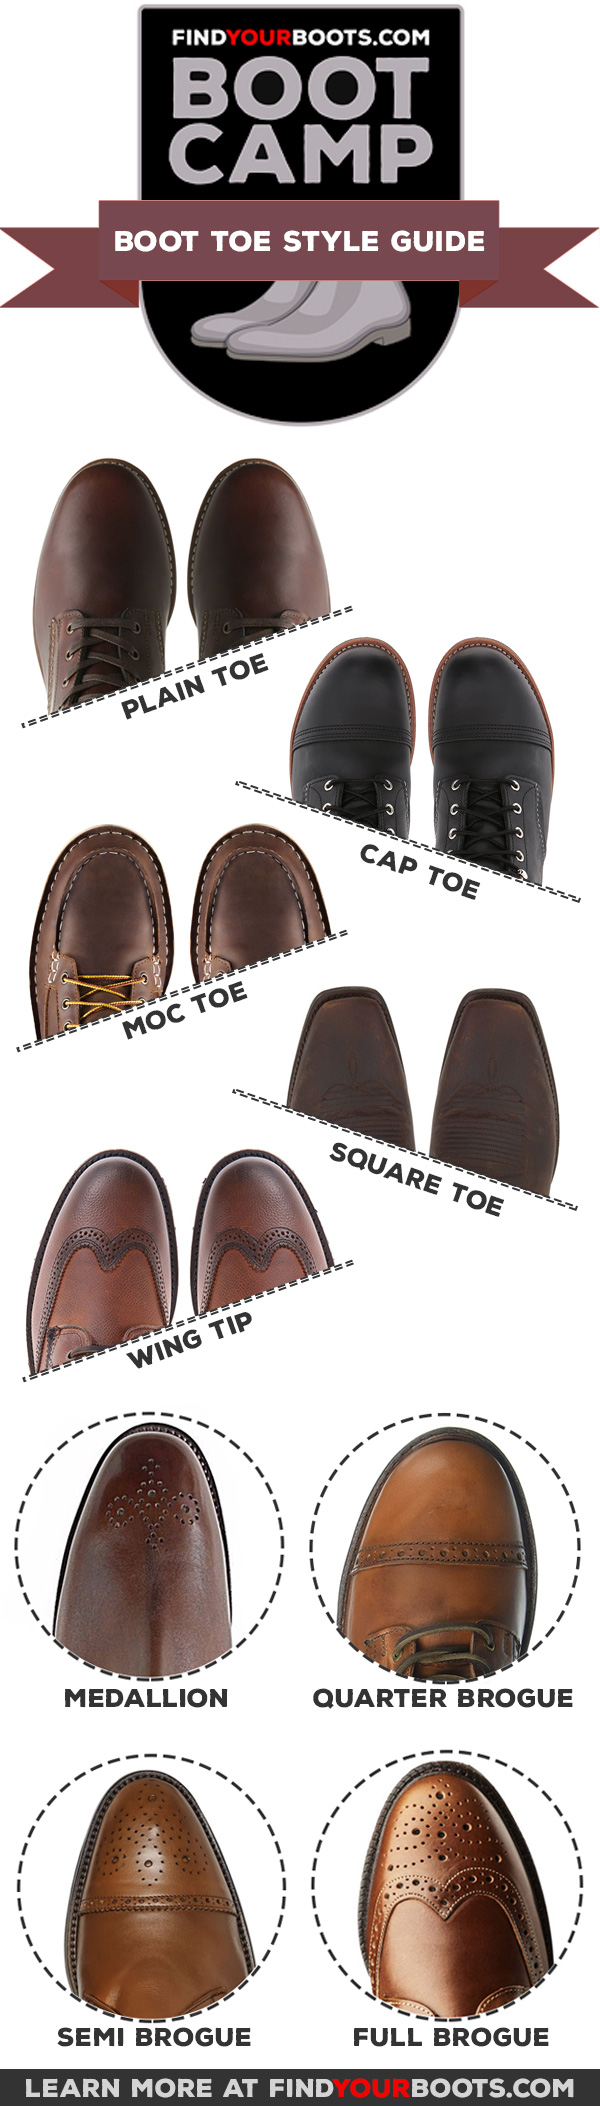 boot-toe-style-guide-findyourboots.jpg